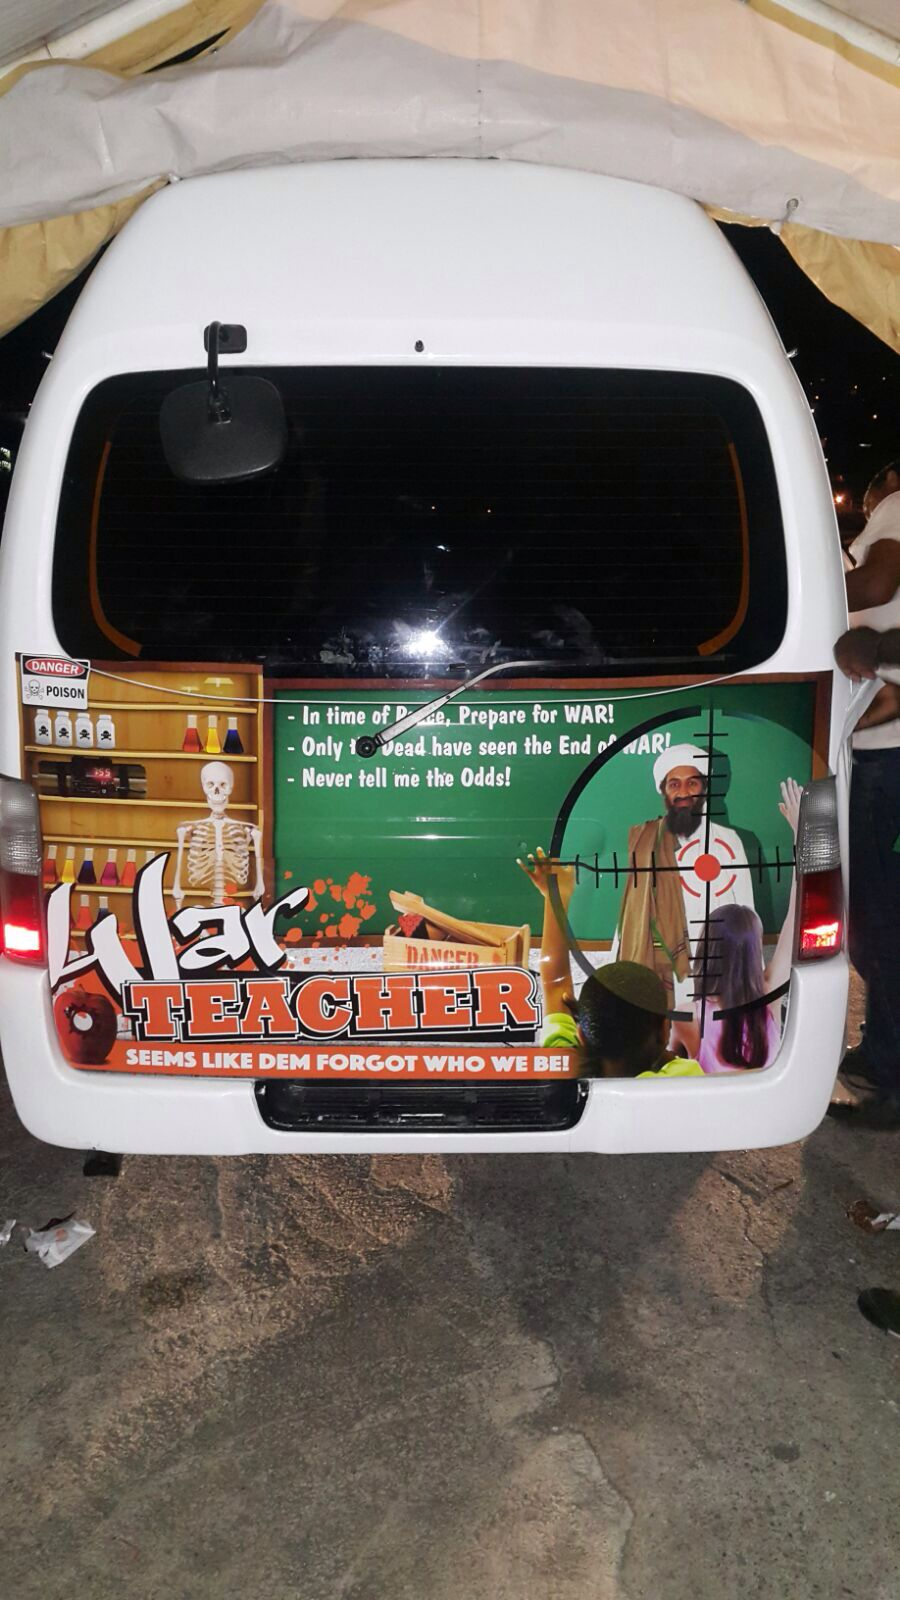 """A controversial image on a van of Osama Bin Laden - The driver was asked to take it off after having complaints about the image. The driver explained that he did not advocate Osama Bin Laden's doctrine , but more so just commented that he was """" Hard to Kill """" and he thought it was worth mentioning. Picture Courtesy of Mickel Carr."""